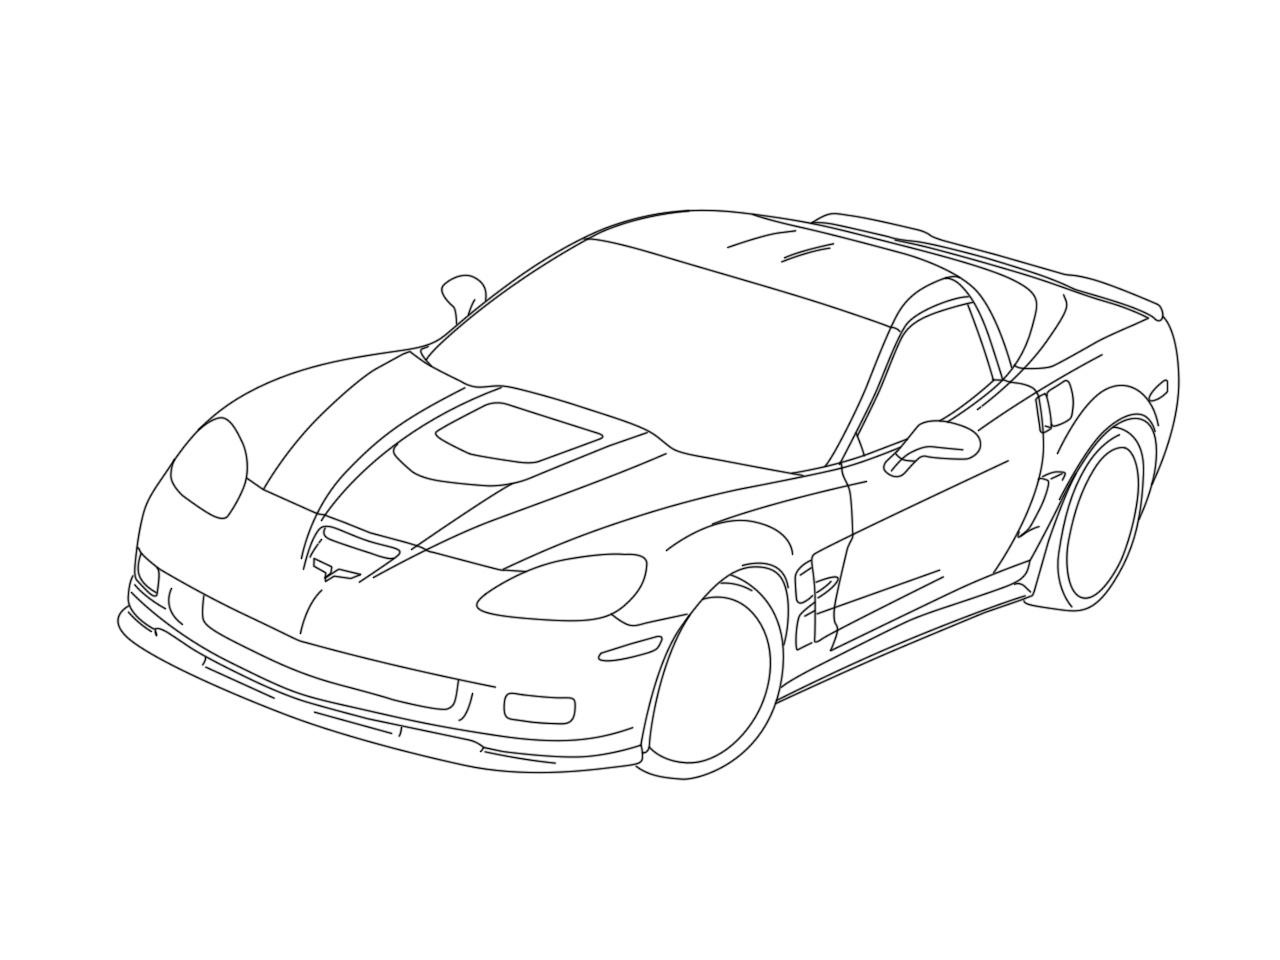 stingray coloring pages printable design - Stingray Coloring Pages Printable